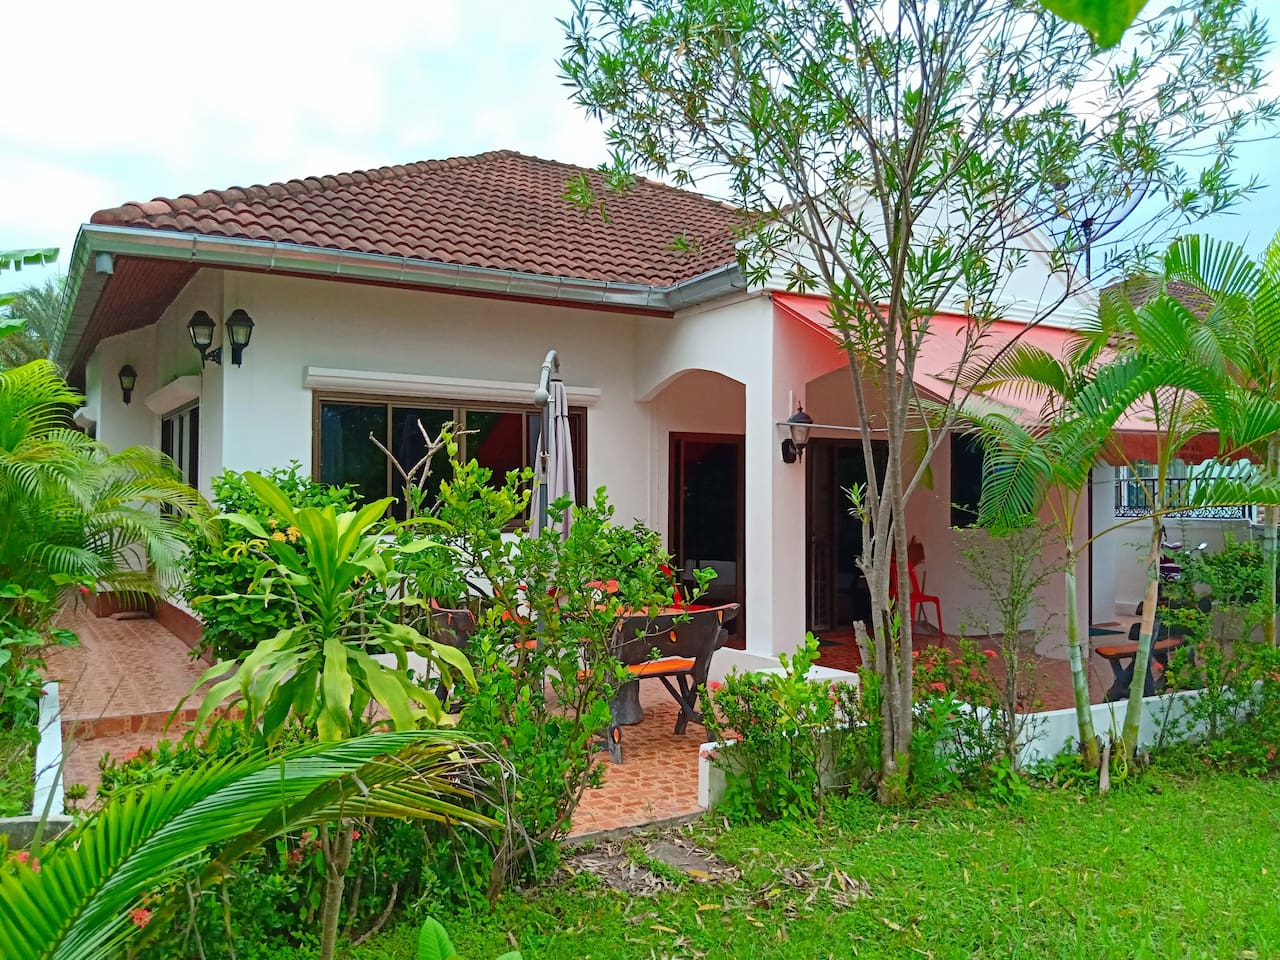 2  Double bedrooms Livingroom Dining room  2 Aircondition Units fast Wifi  Private parking and nice private garden. Washing machine, Smart Tv, The Villa can be extended to 3 bedrooms 2 kitchens and 2 shower suites. Patio outside BBQ